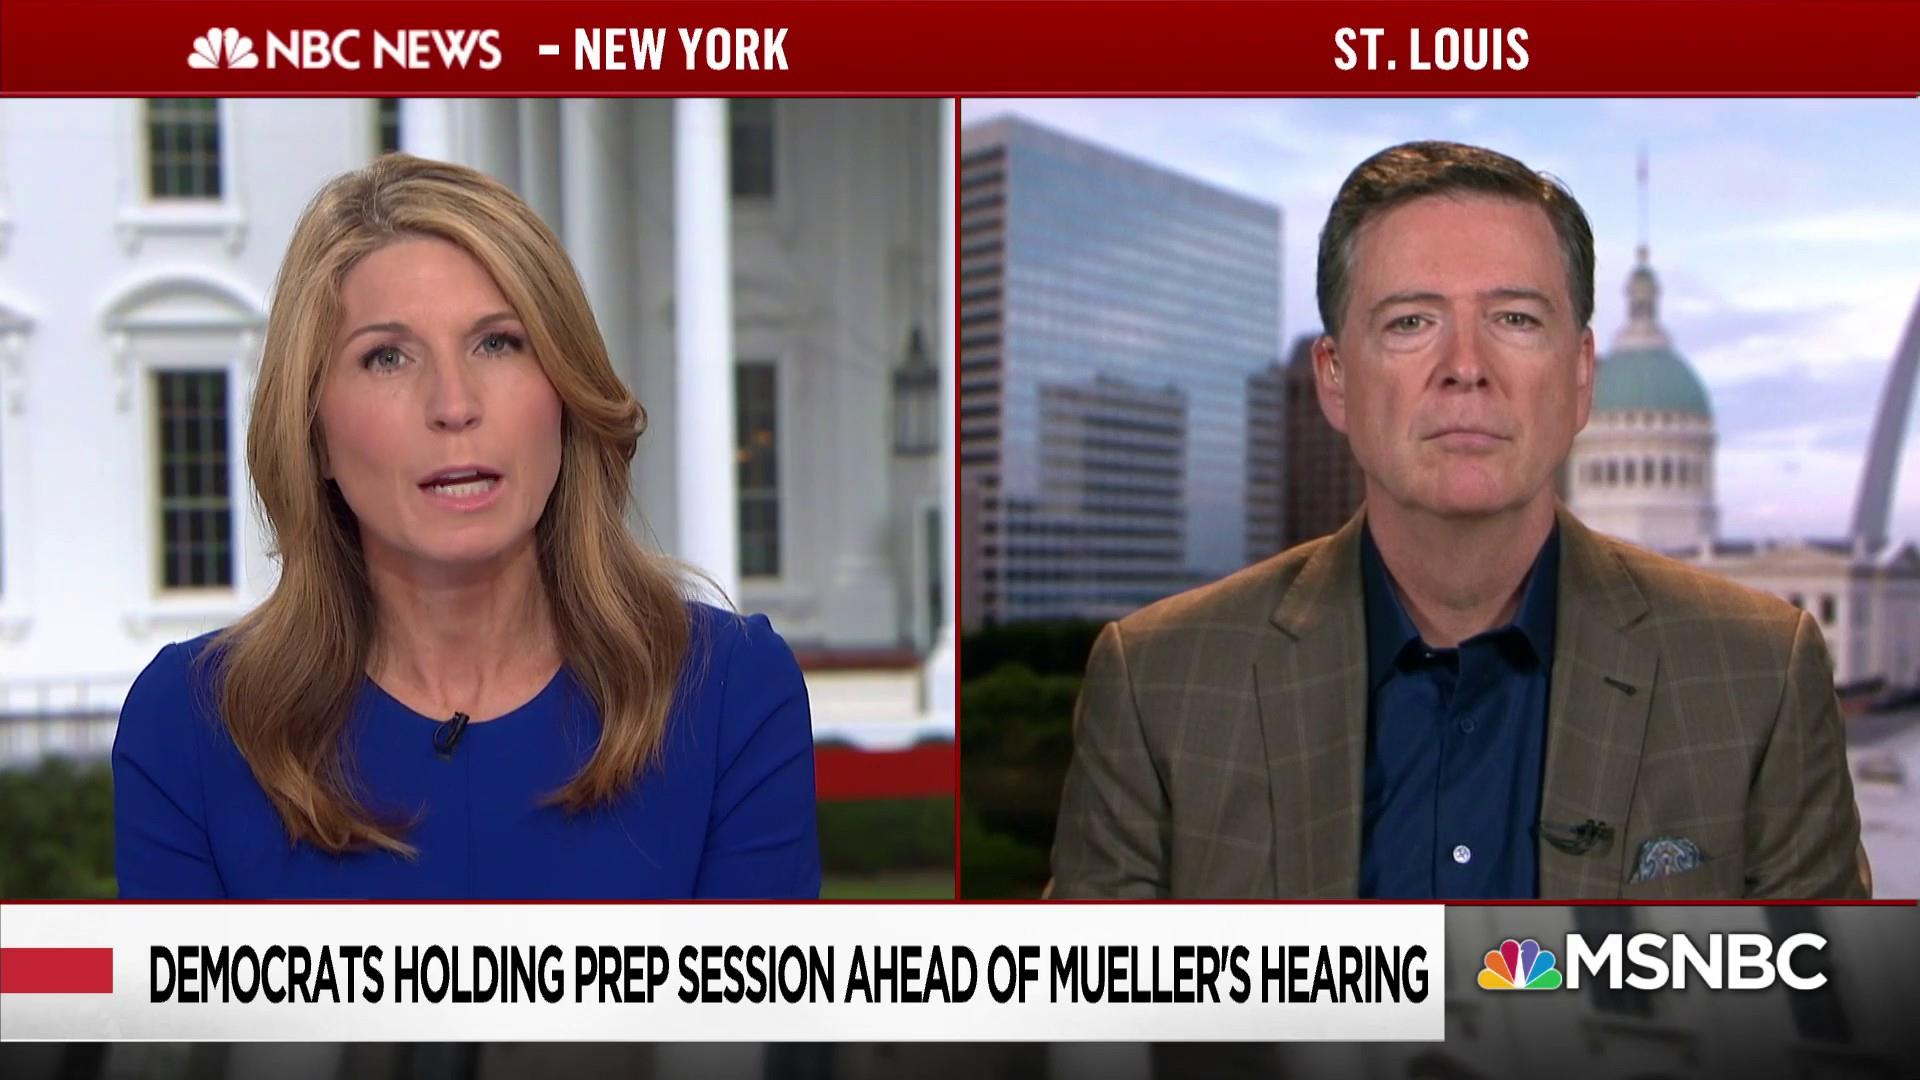 Comey: 'If this were a case about somebody other than the president, they'd already have been indicted'